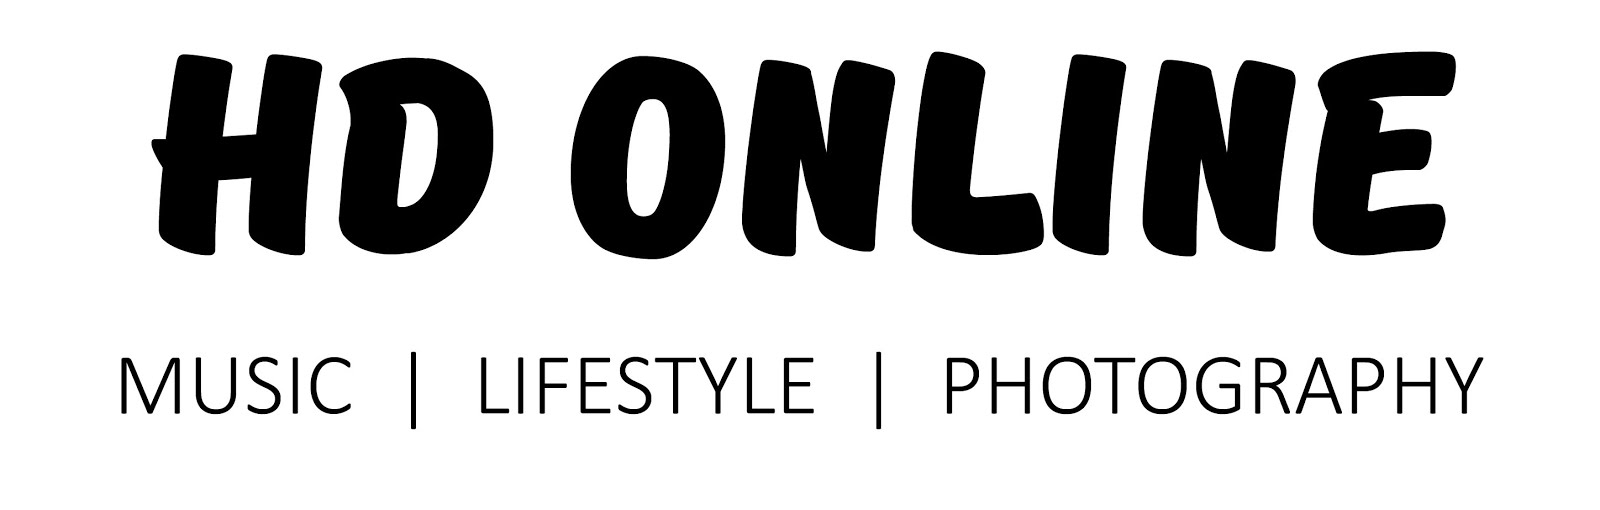 HD Online | Music, Lifestyle & Photography